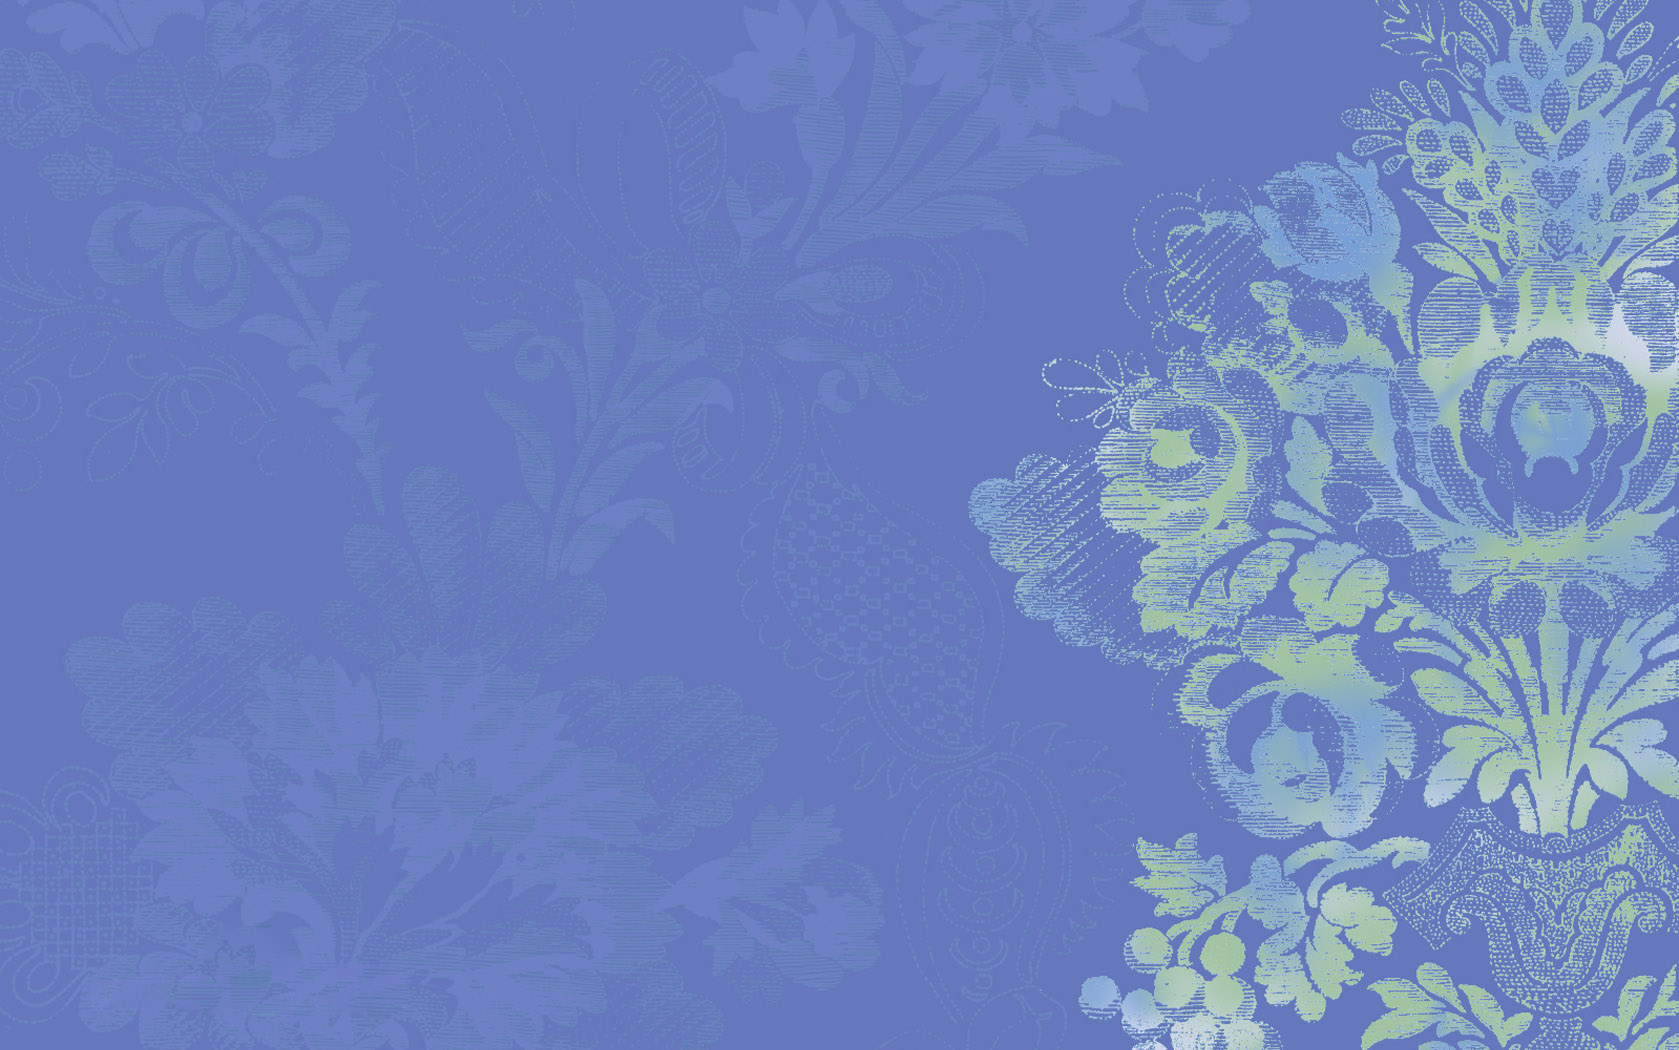 calming wallpaper in serene blue with stylized floral design 1679 1679x1050